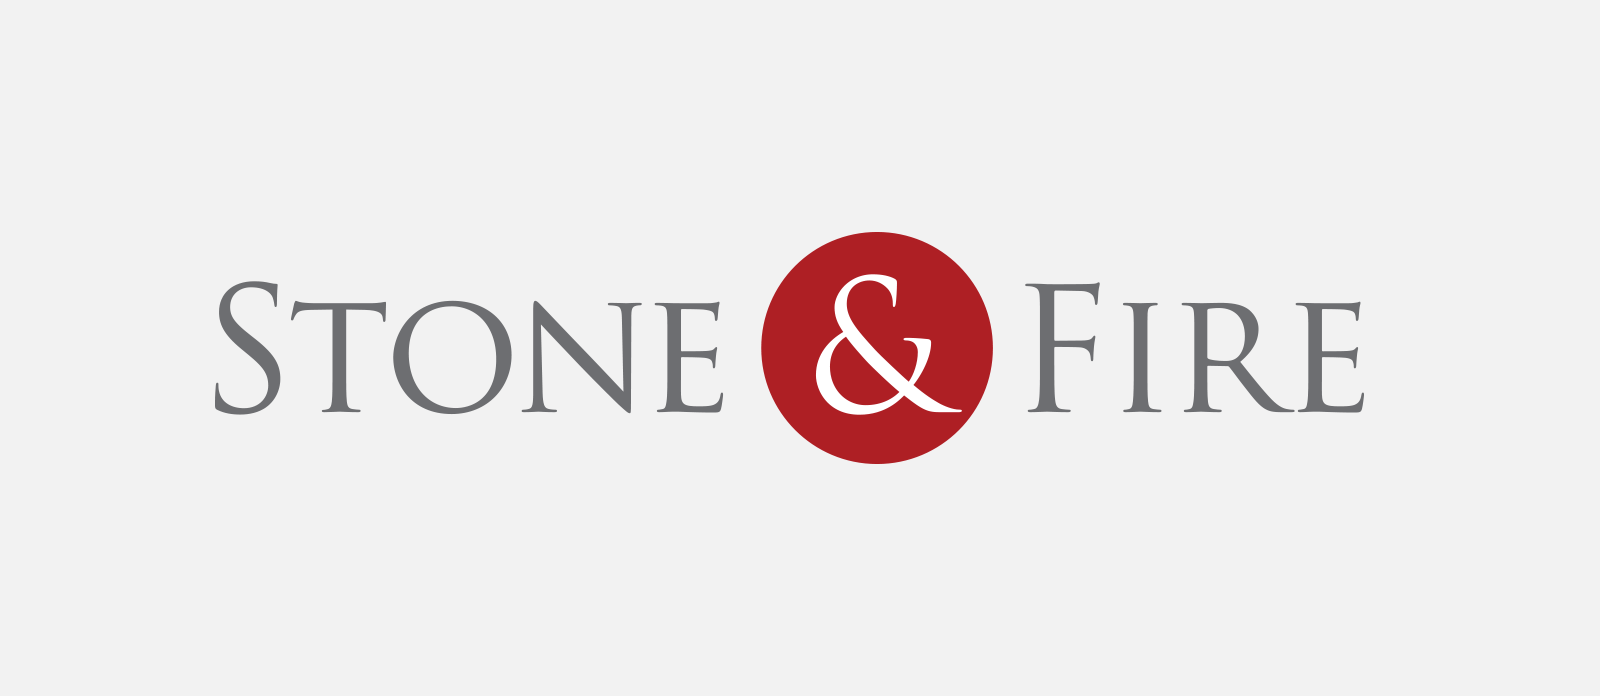 Stone and fire logo